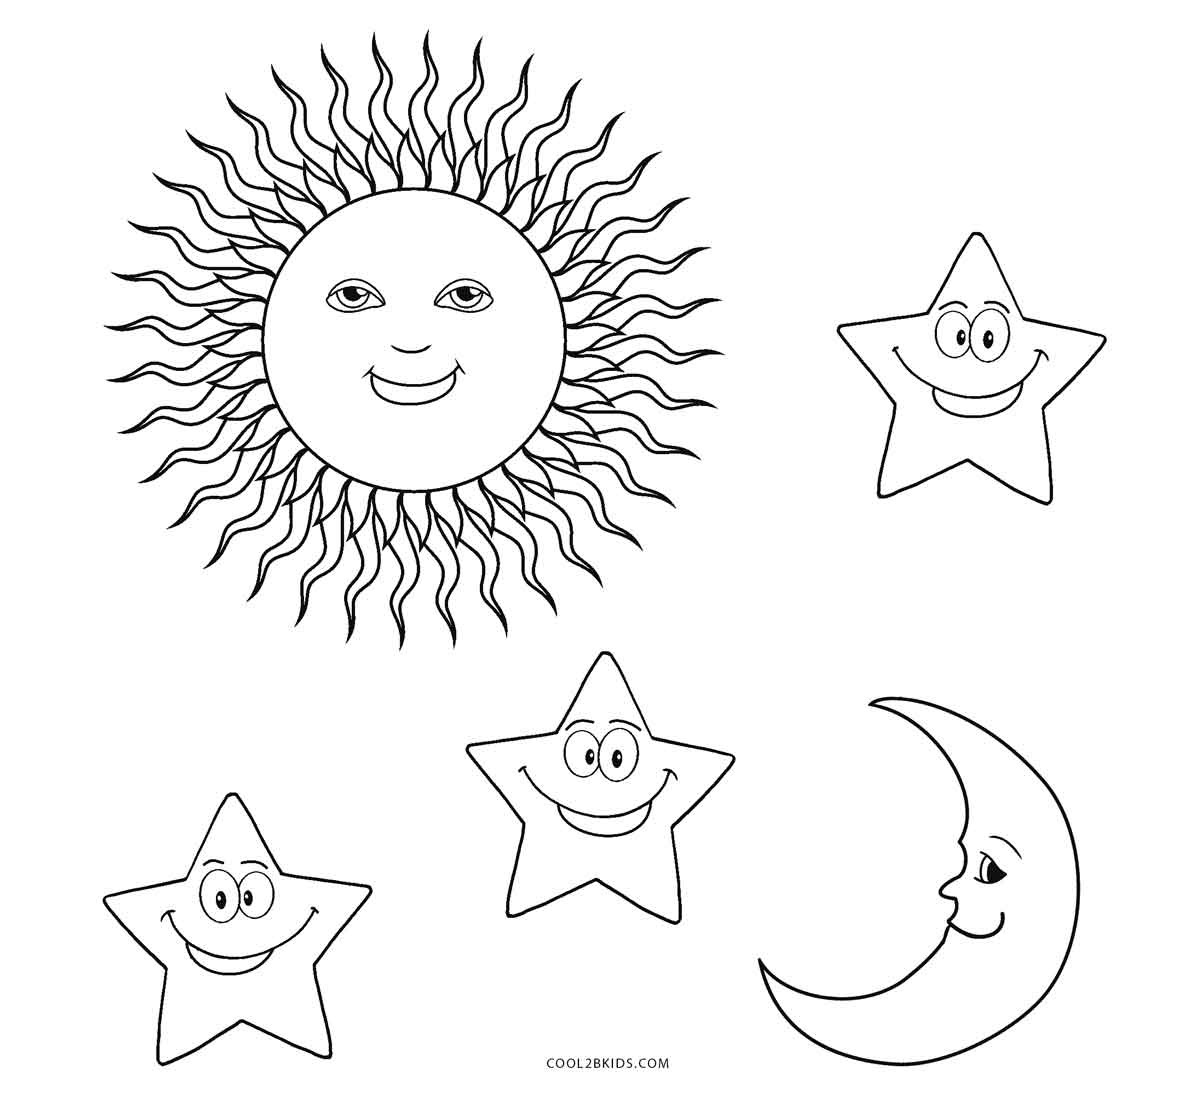 cool sun coloring pages cool high summer sun coloring page sun coloring pages coloring sun cool pages